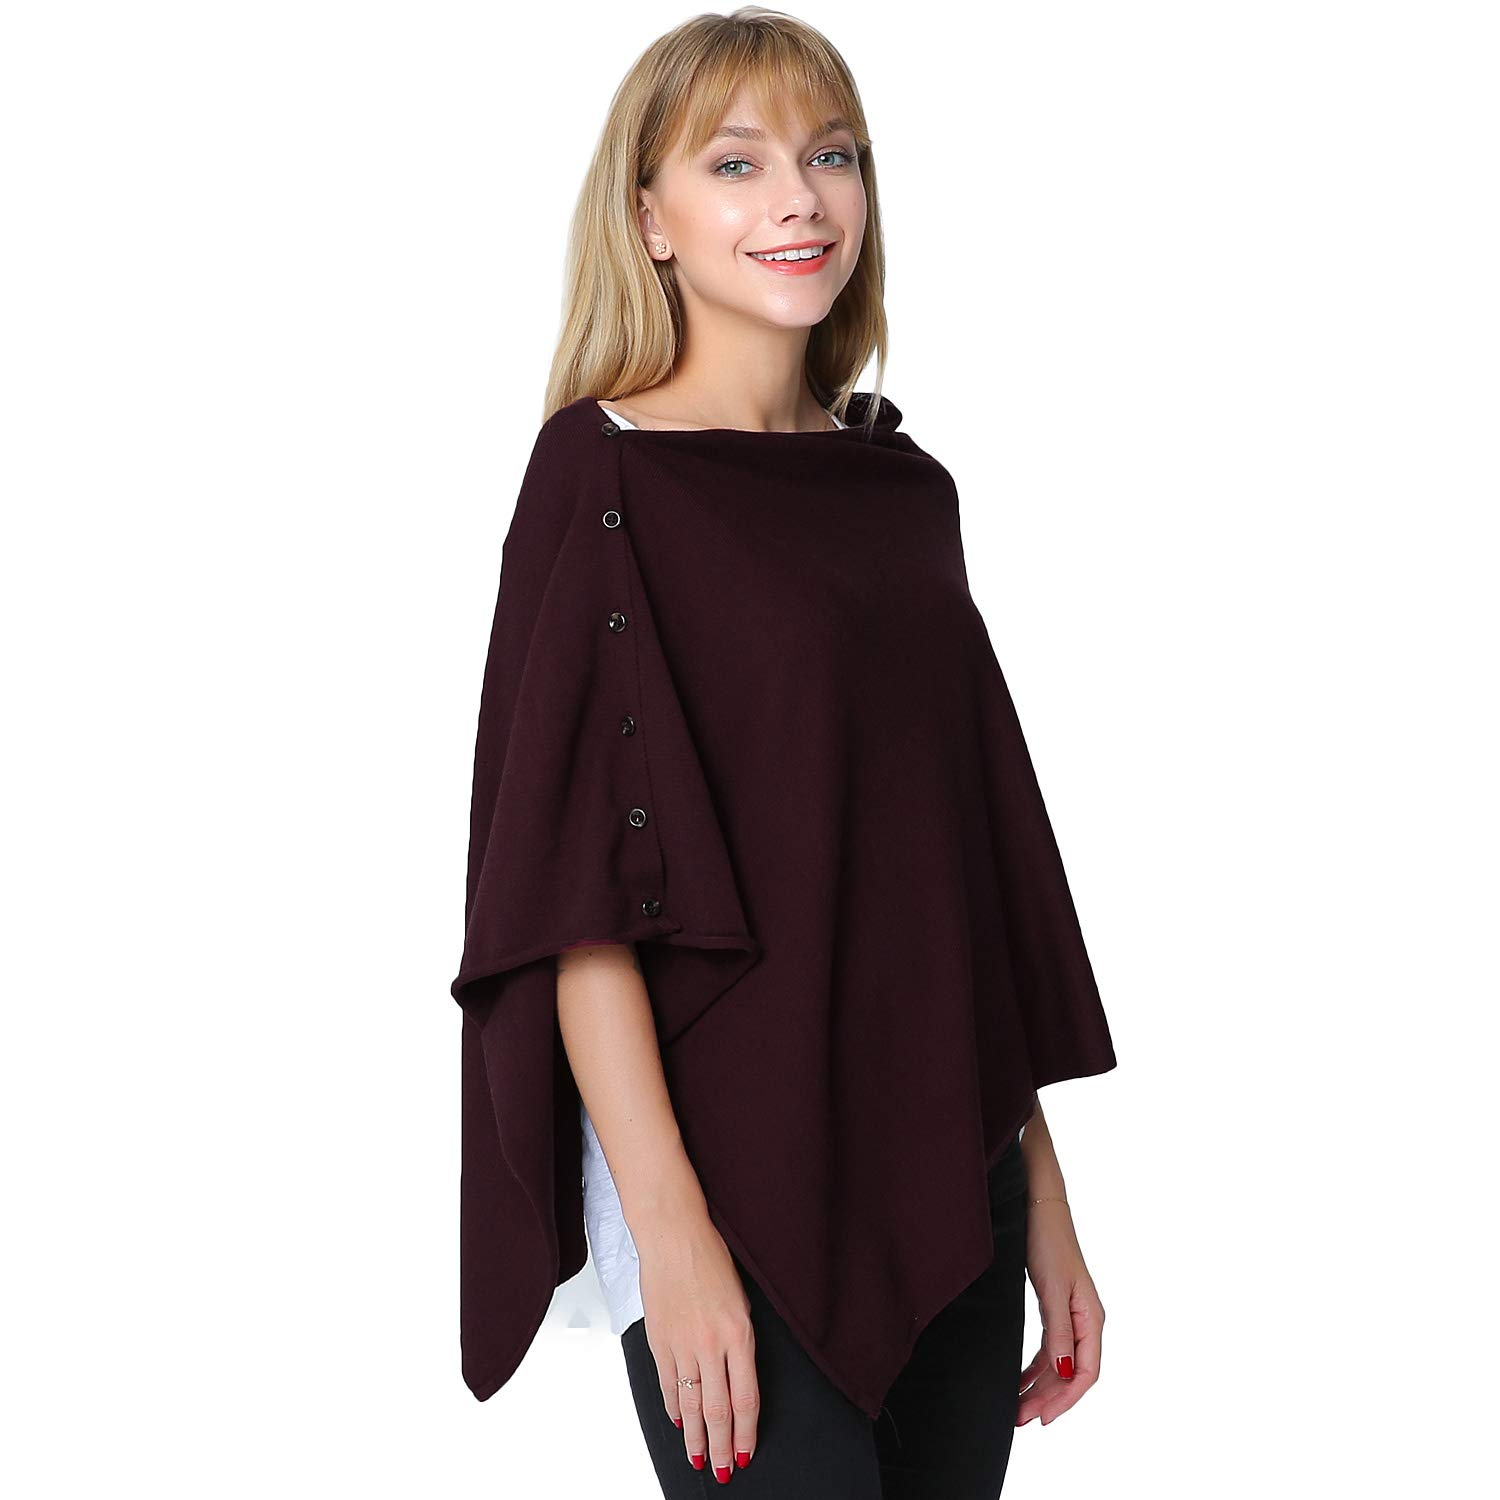 PULI Women's Versatile Knitted Scarf with Buttons Shawl Poncho Cape Cardigan, Burgundy